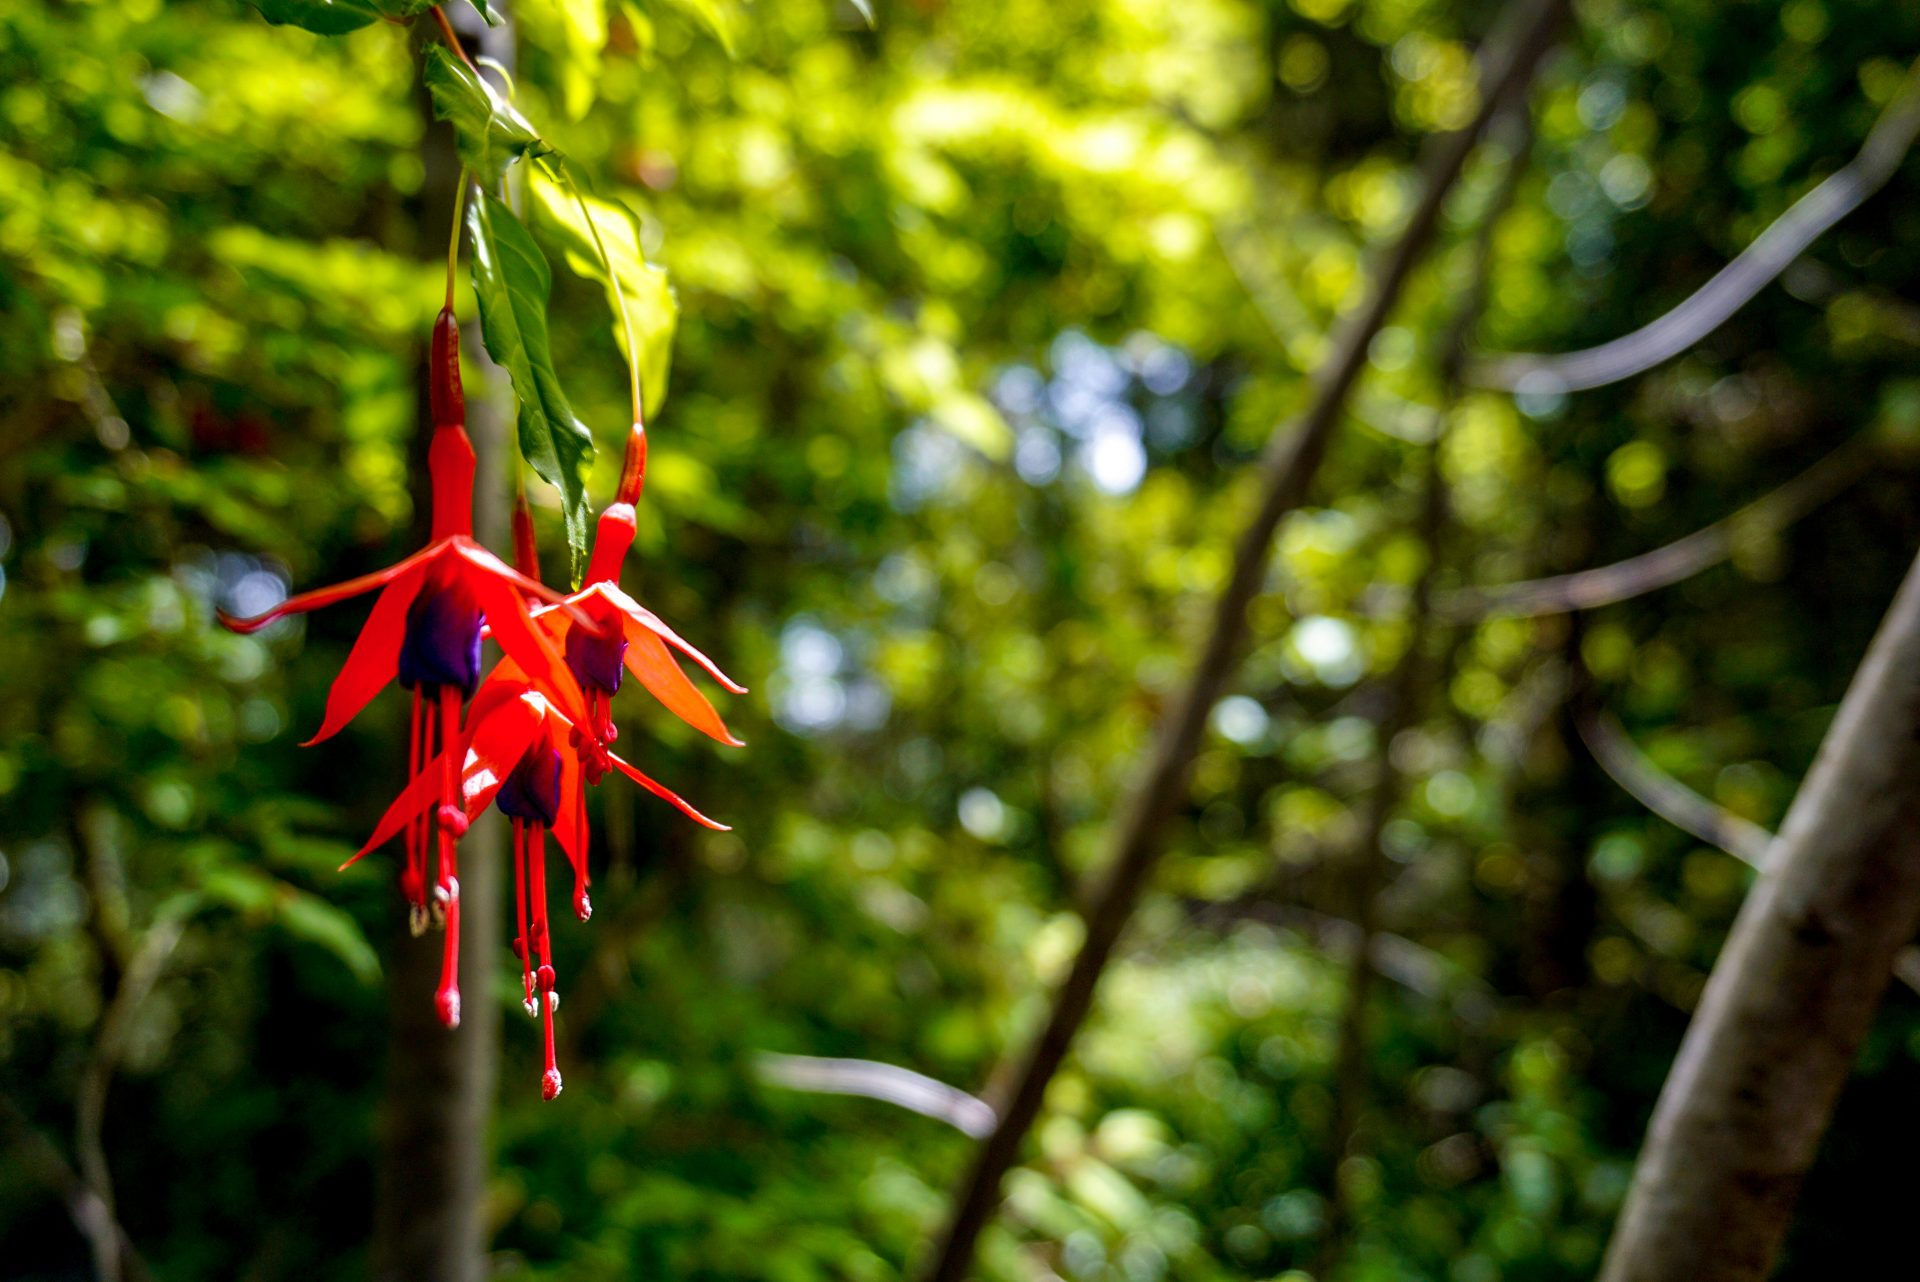 Flora in the Huillo Huilo Reserve, Chile - Experiencing the Globe